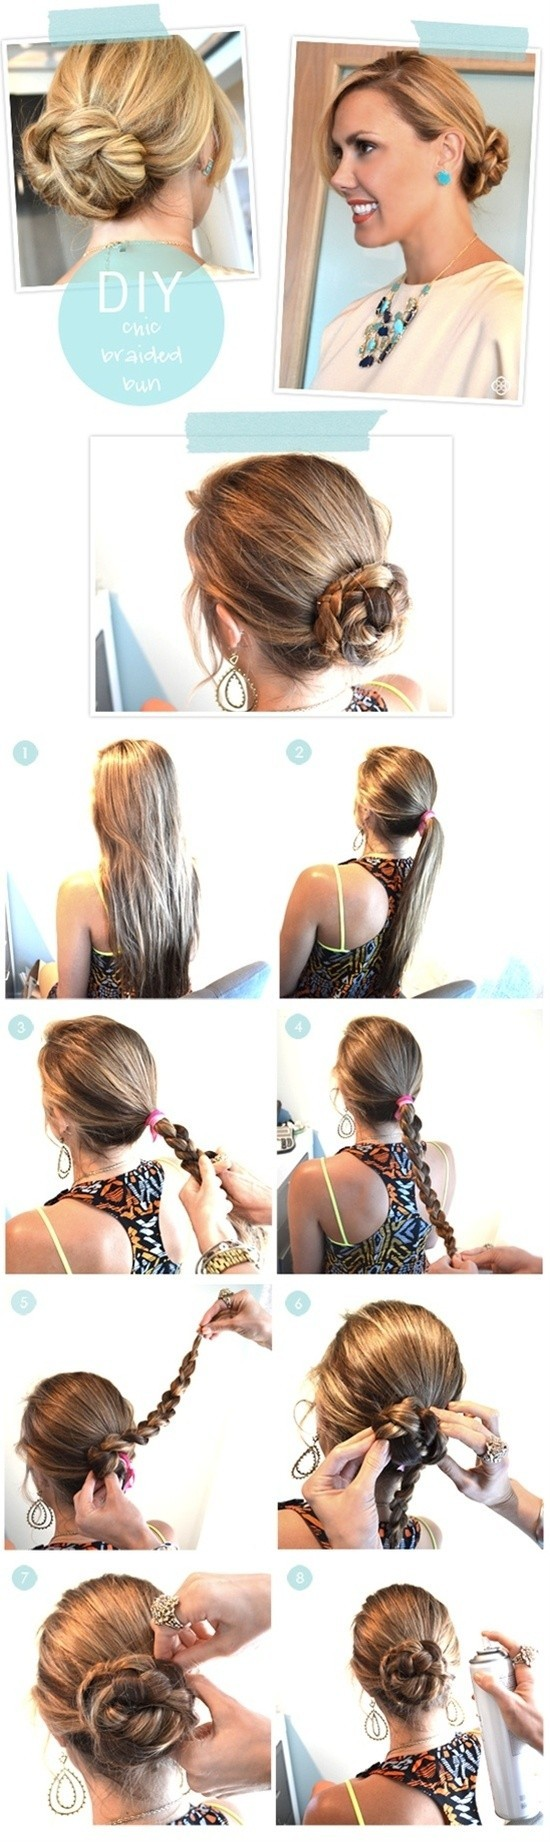 50 inspired diy haircuts for short hair step by step hairstyles for long hair long hairstyles ideas popular haircuts solutioingenieria Gallery